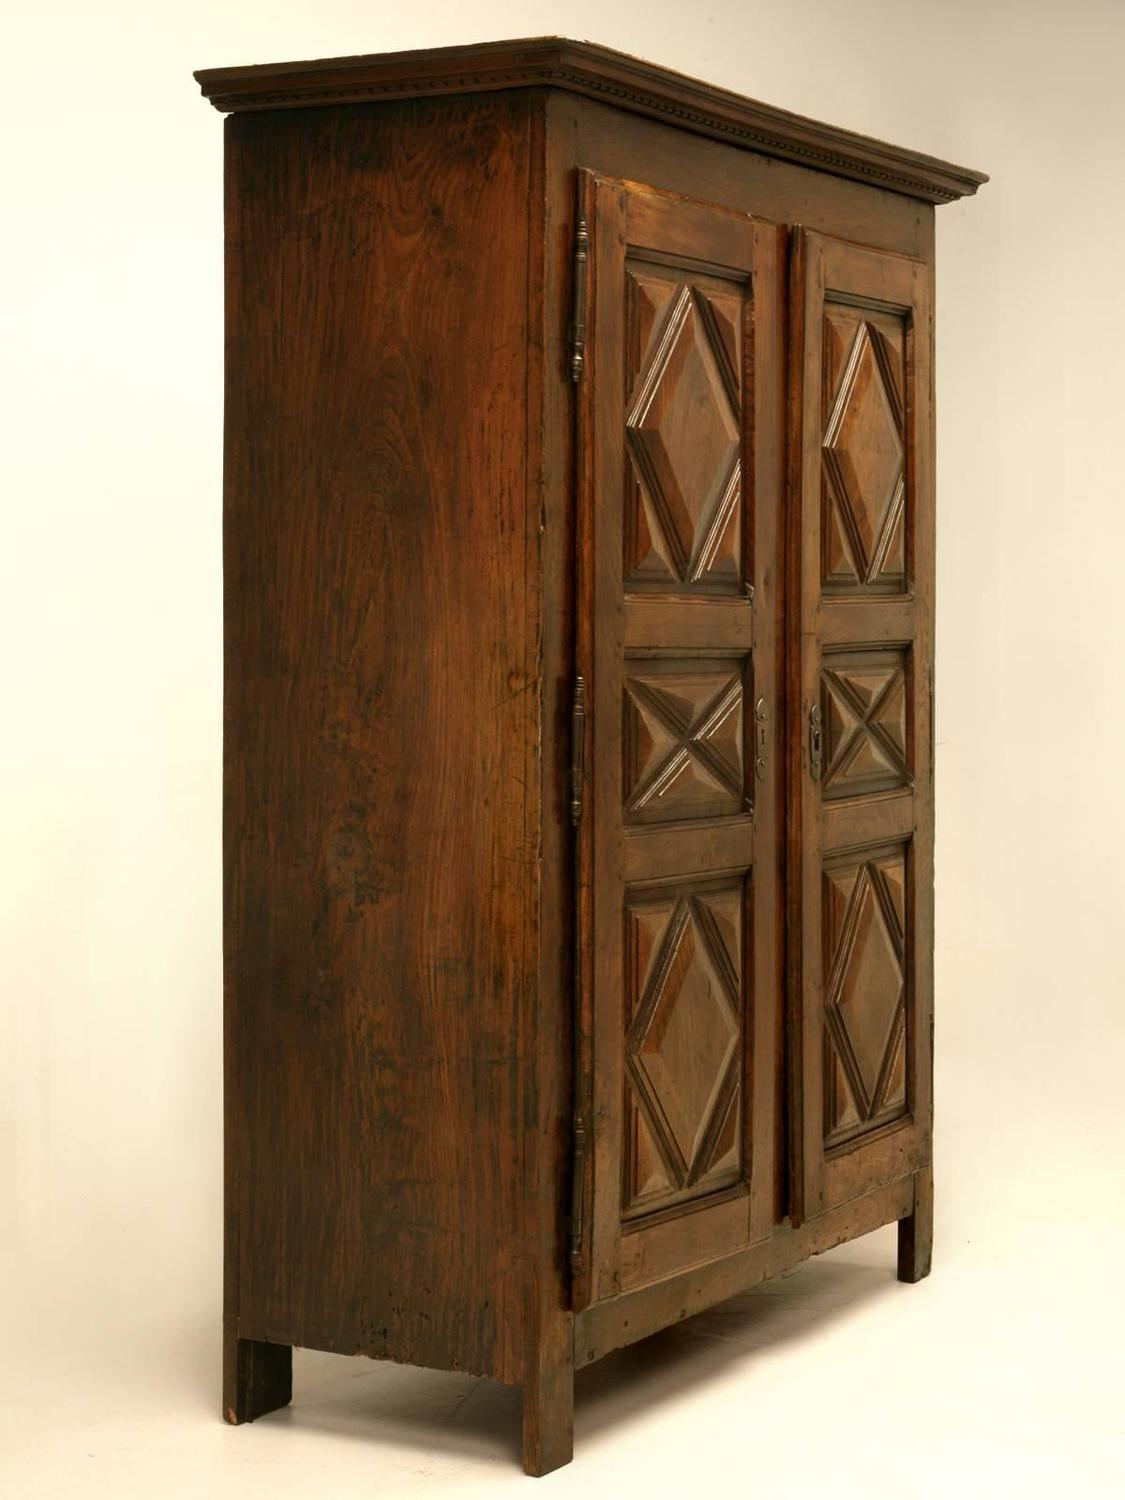 Antique French Louis Xiii Style Armoire From The 1700 S